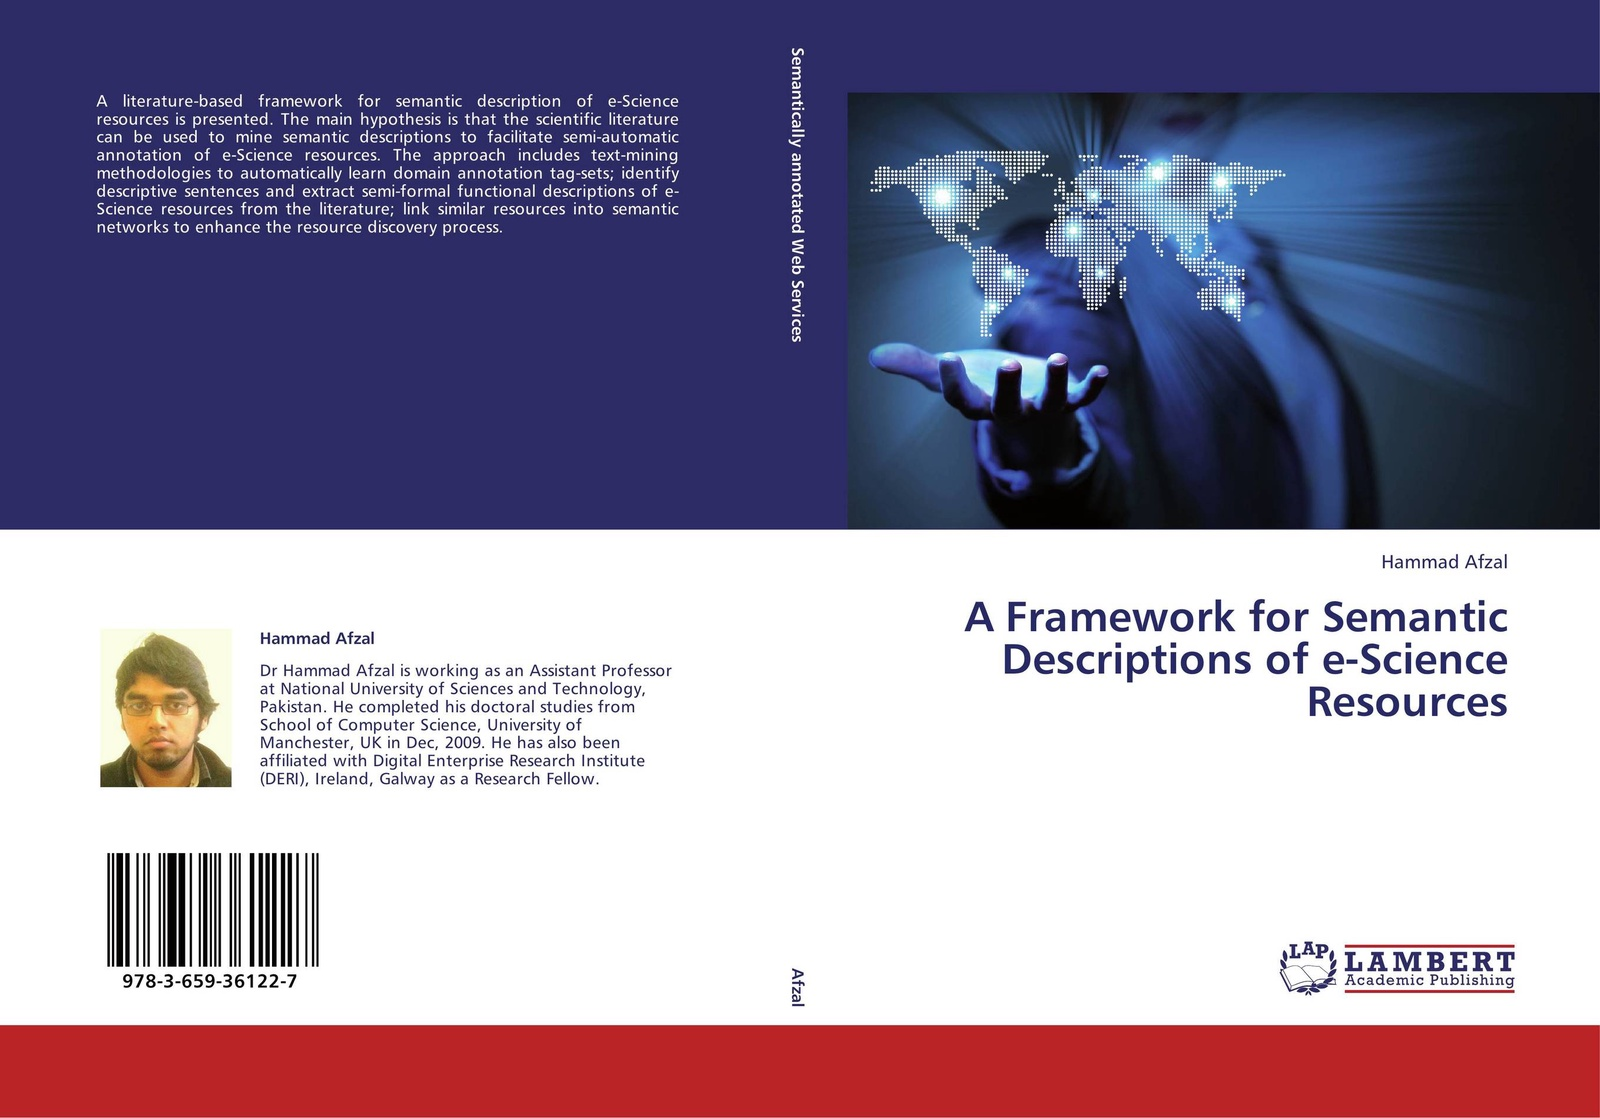 Hammad Afzal A Framework for Semantic Descriptions of e-Science Resources